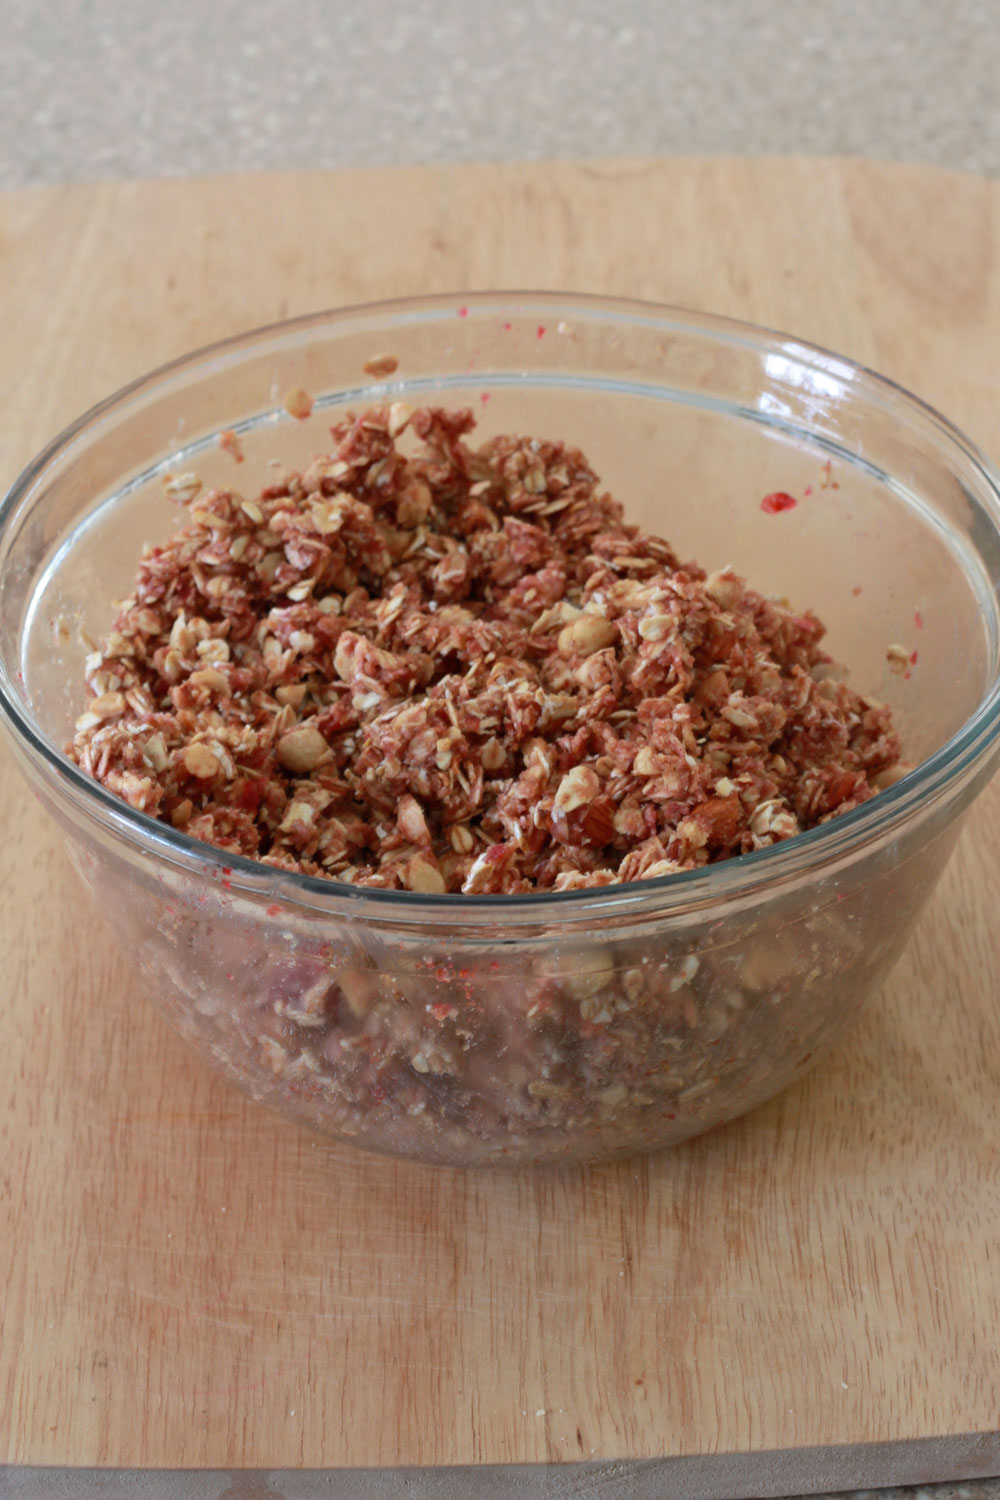 Peanut Butter and Jelly Granola Bowl 1